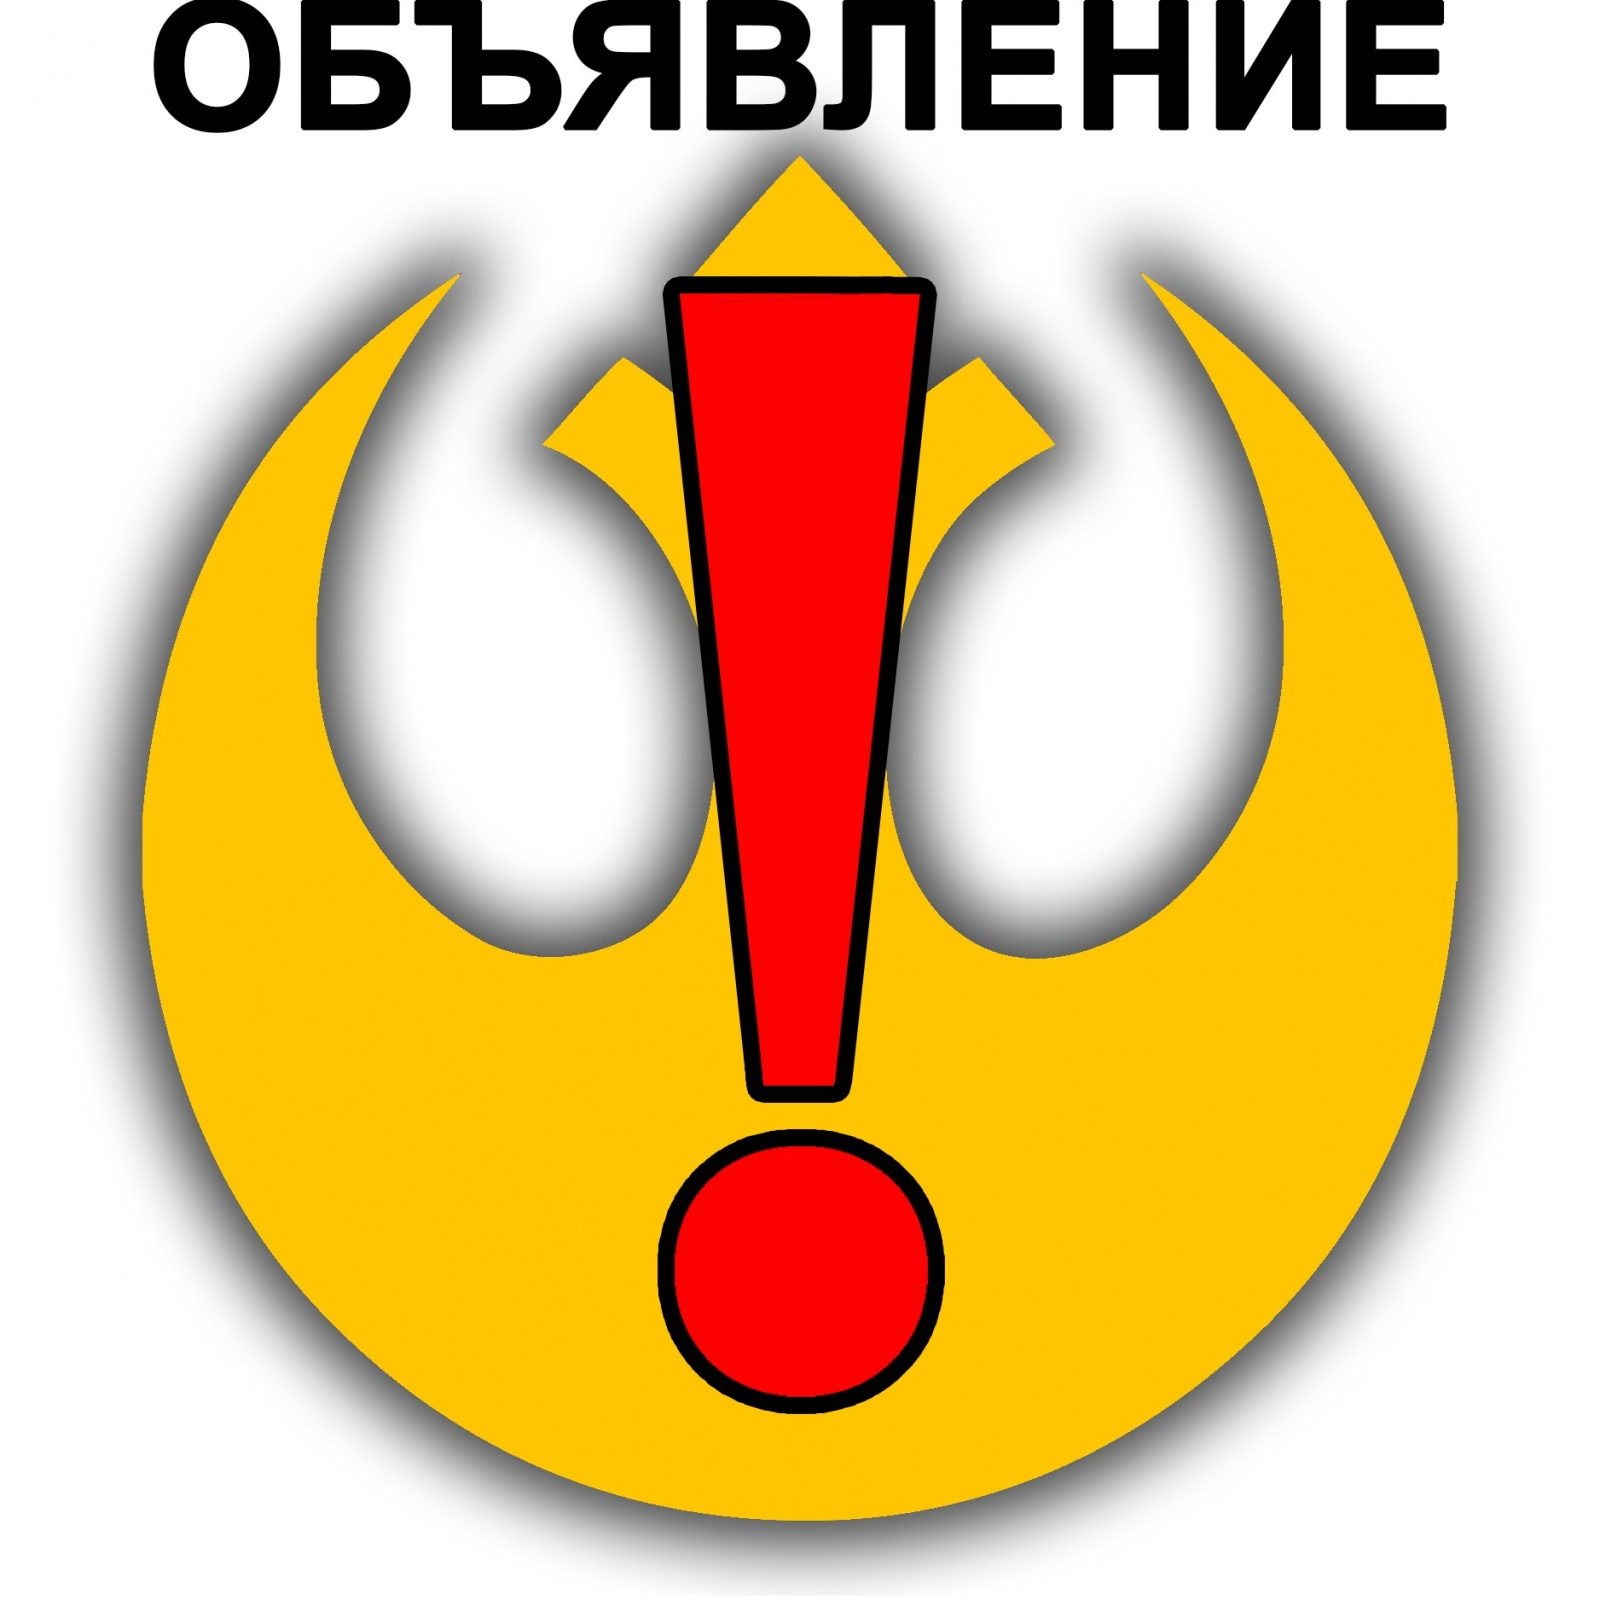 Новости Звездных Войн (Star Wars news): SWatB необходима помощь с форматом книг FB2